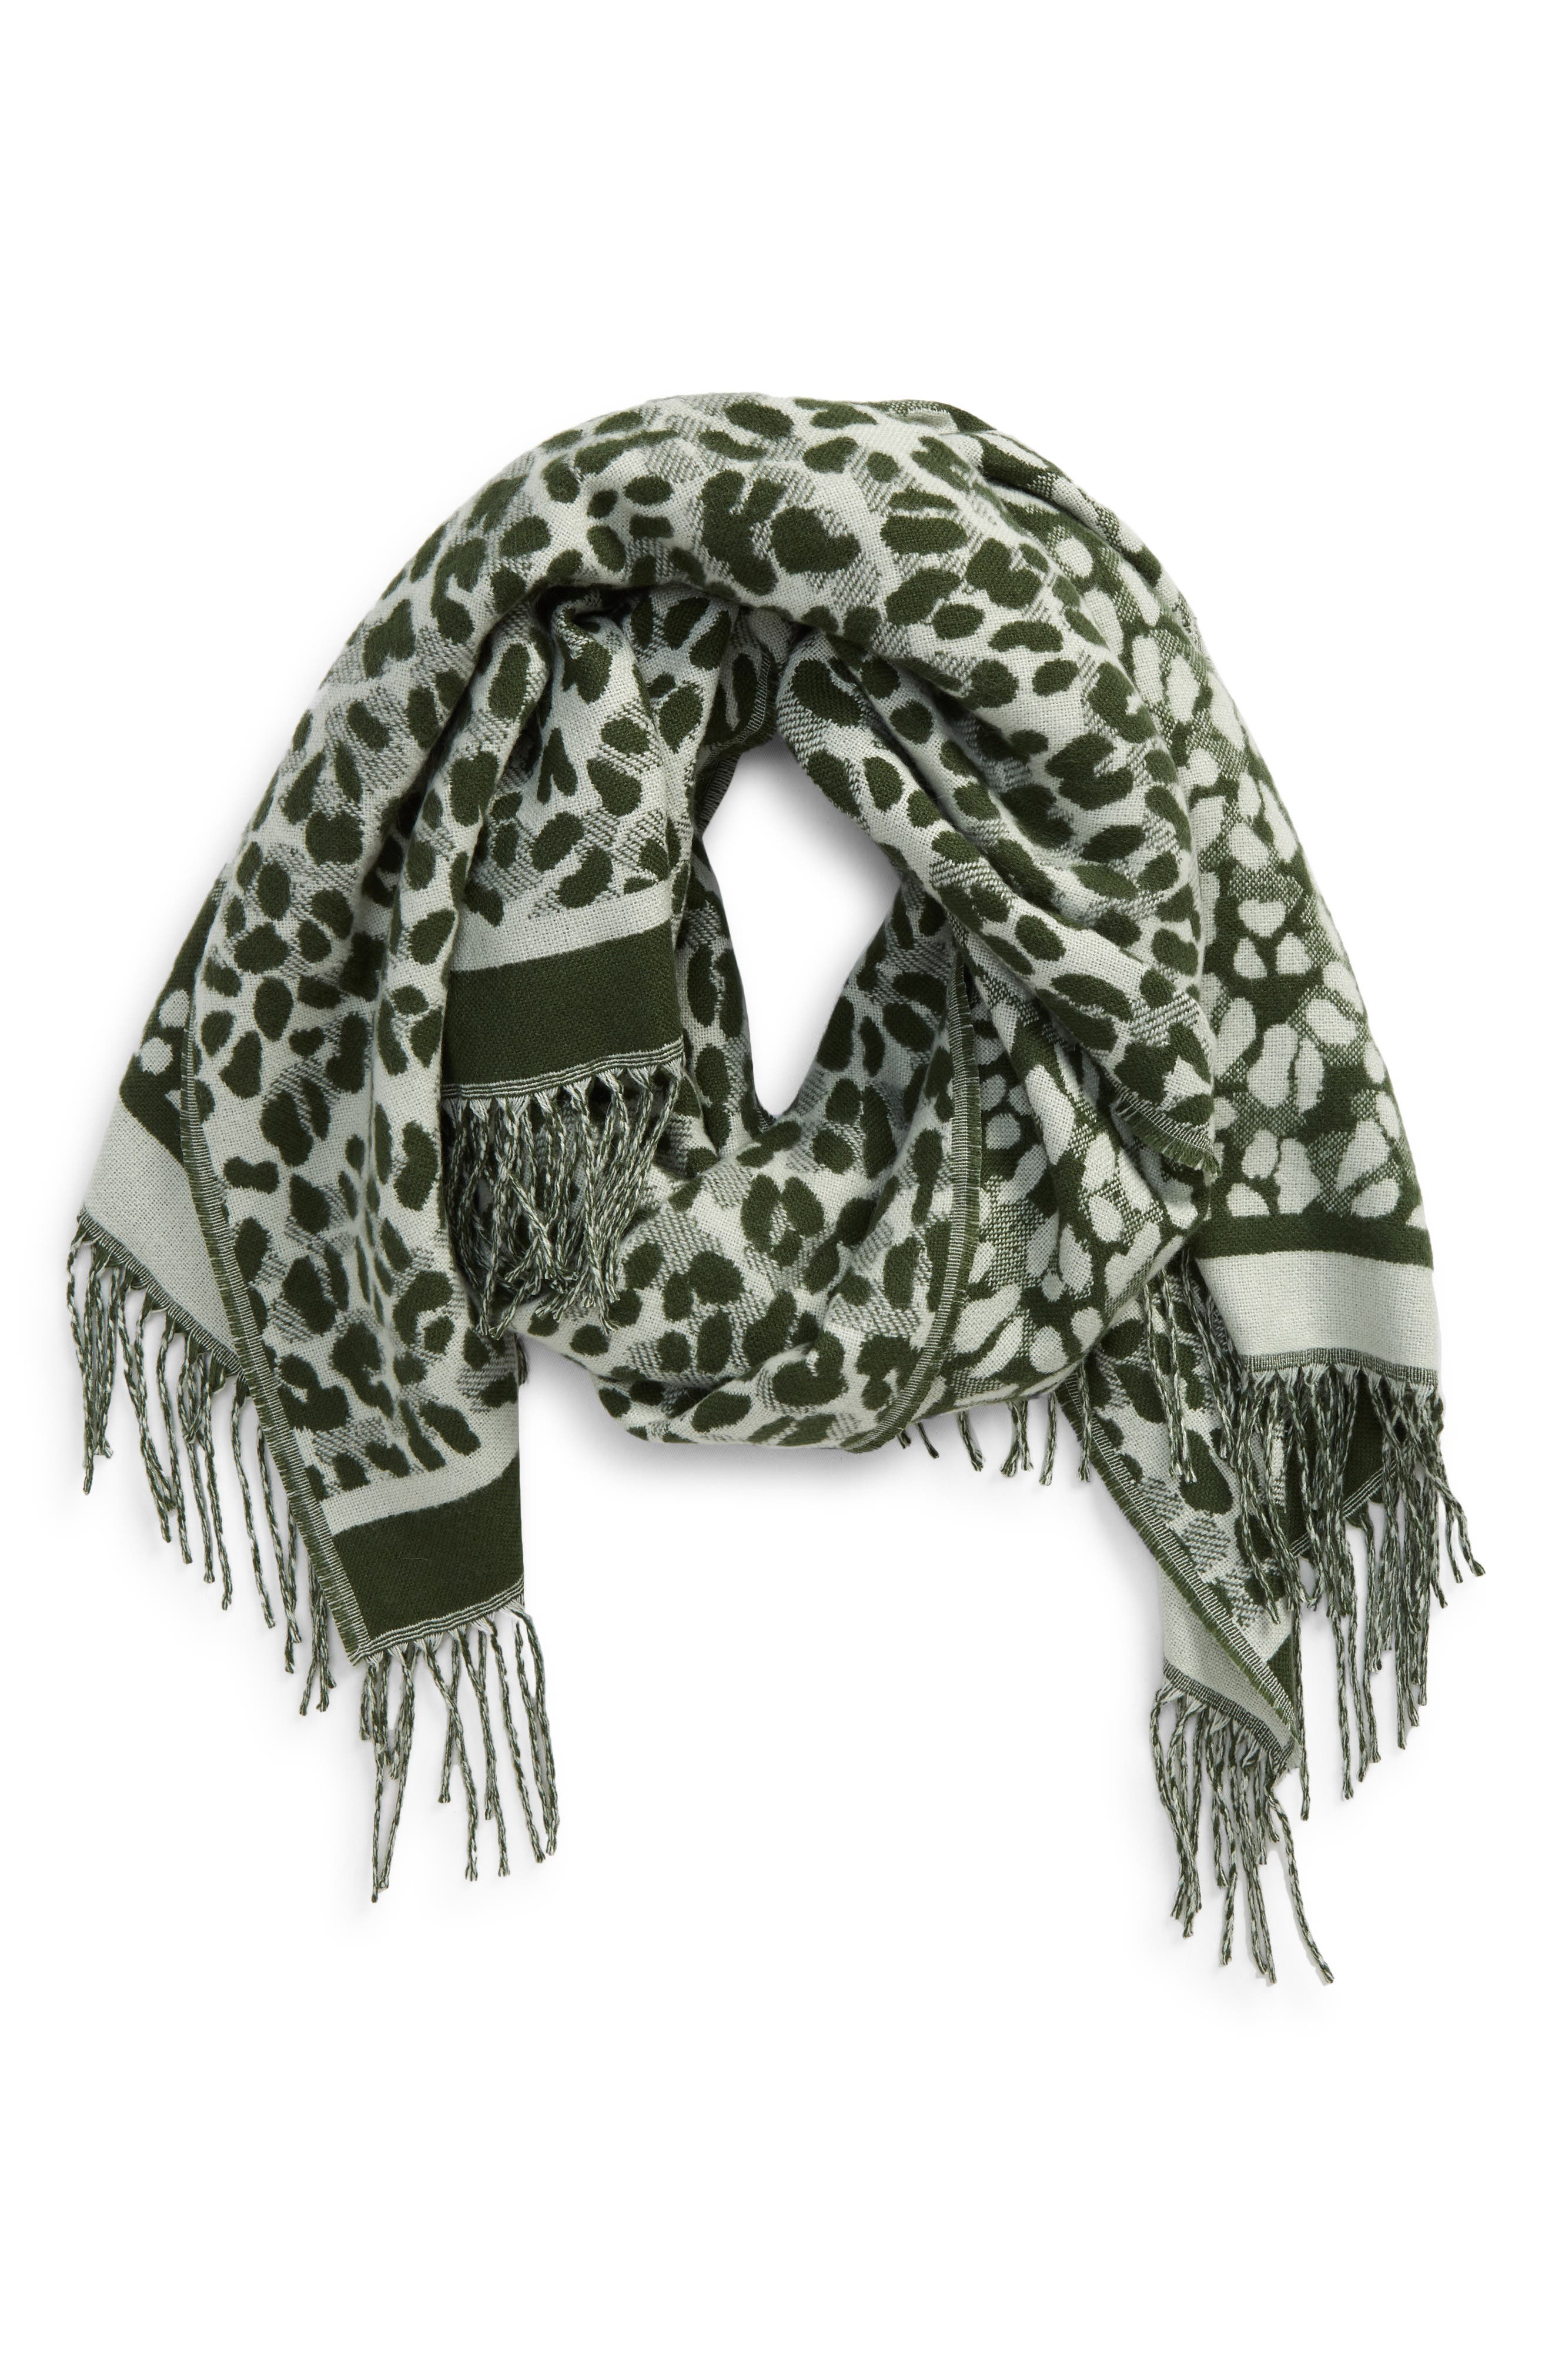 Bring an exotic finishing touch to your cold-weather look with this leopard-print scarf trimmed with long, twisted fringe. Style Name: Ted Baker London Leopard Scarf. Style Number: 5908378. Available in stores.